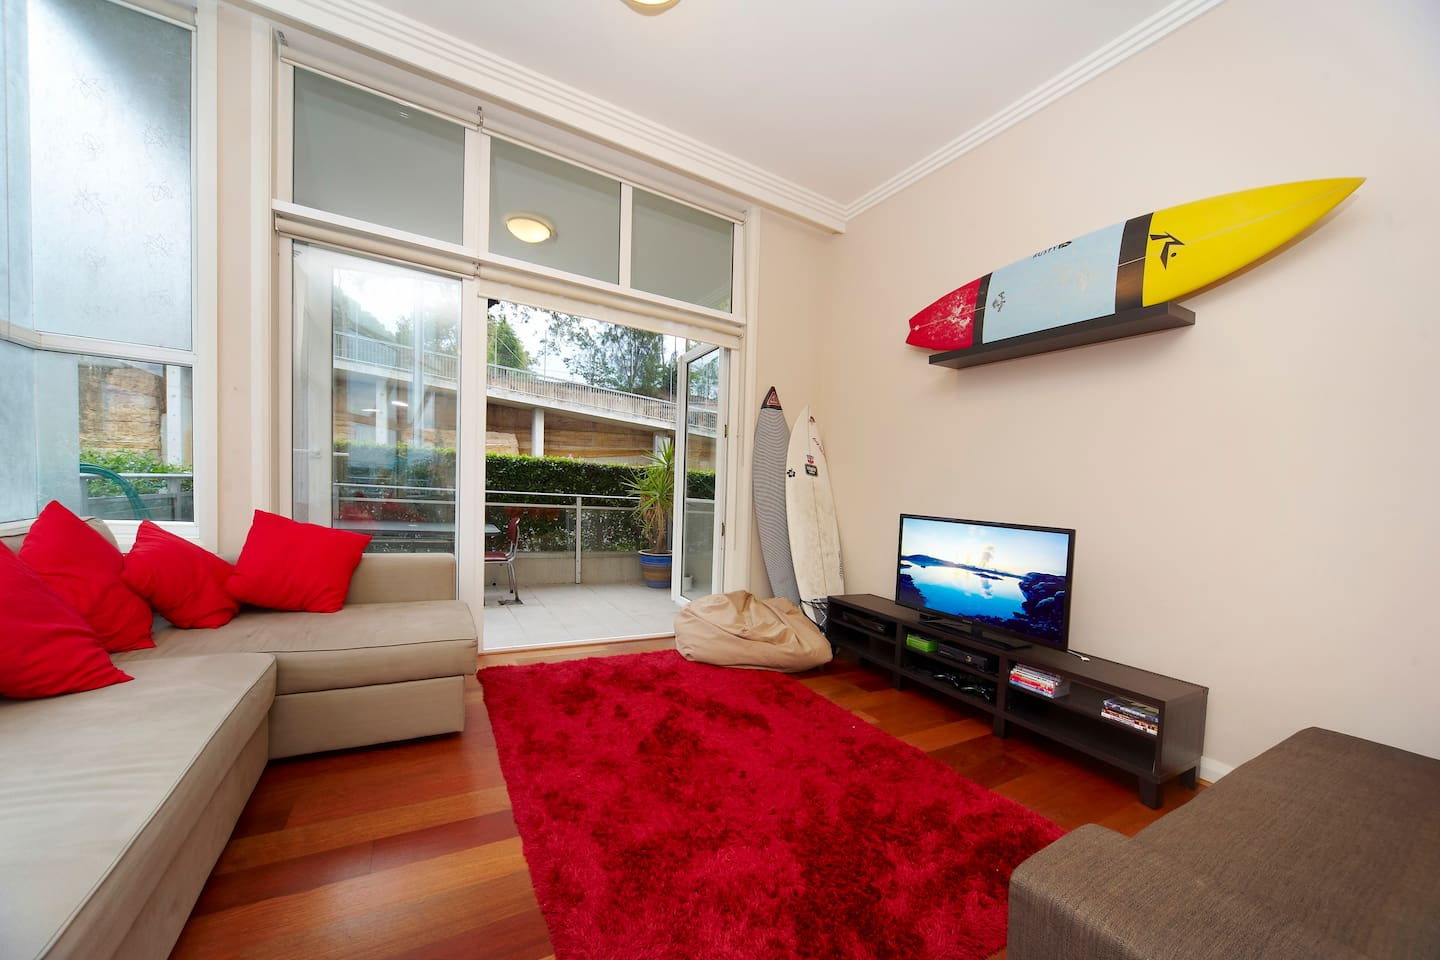 Enjoy the LED TV and all the perks: appleTV, Fetch, a DVD player and Xbox! Make yourself at home